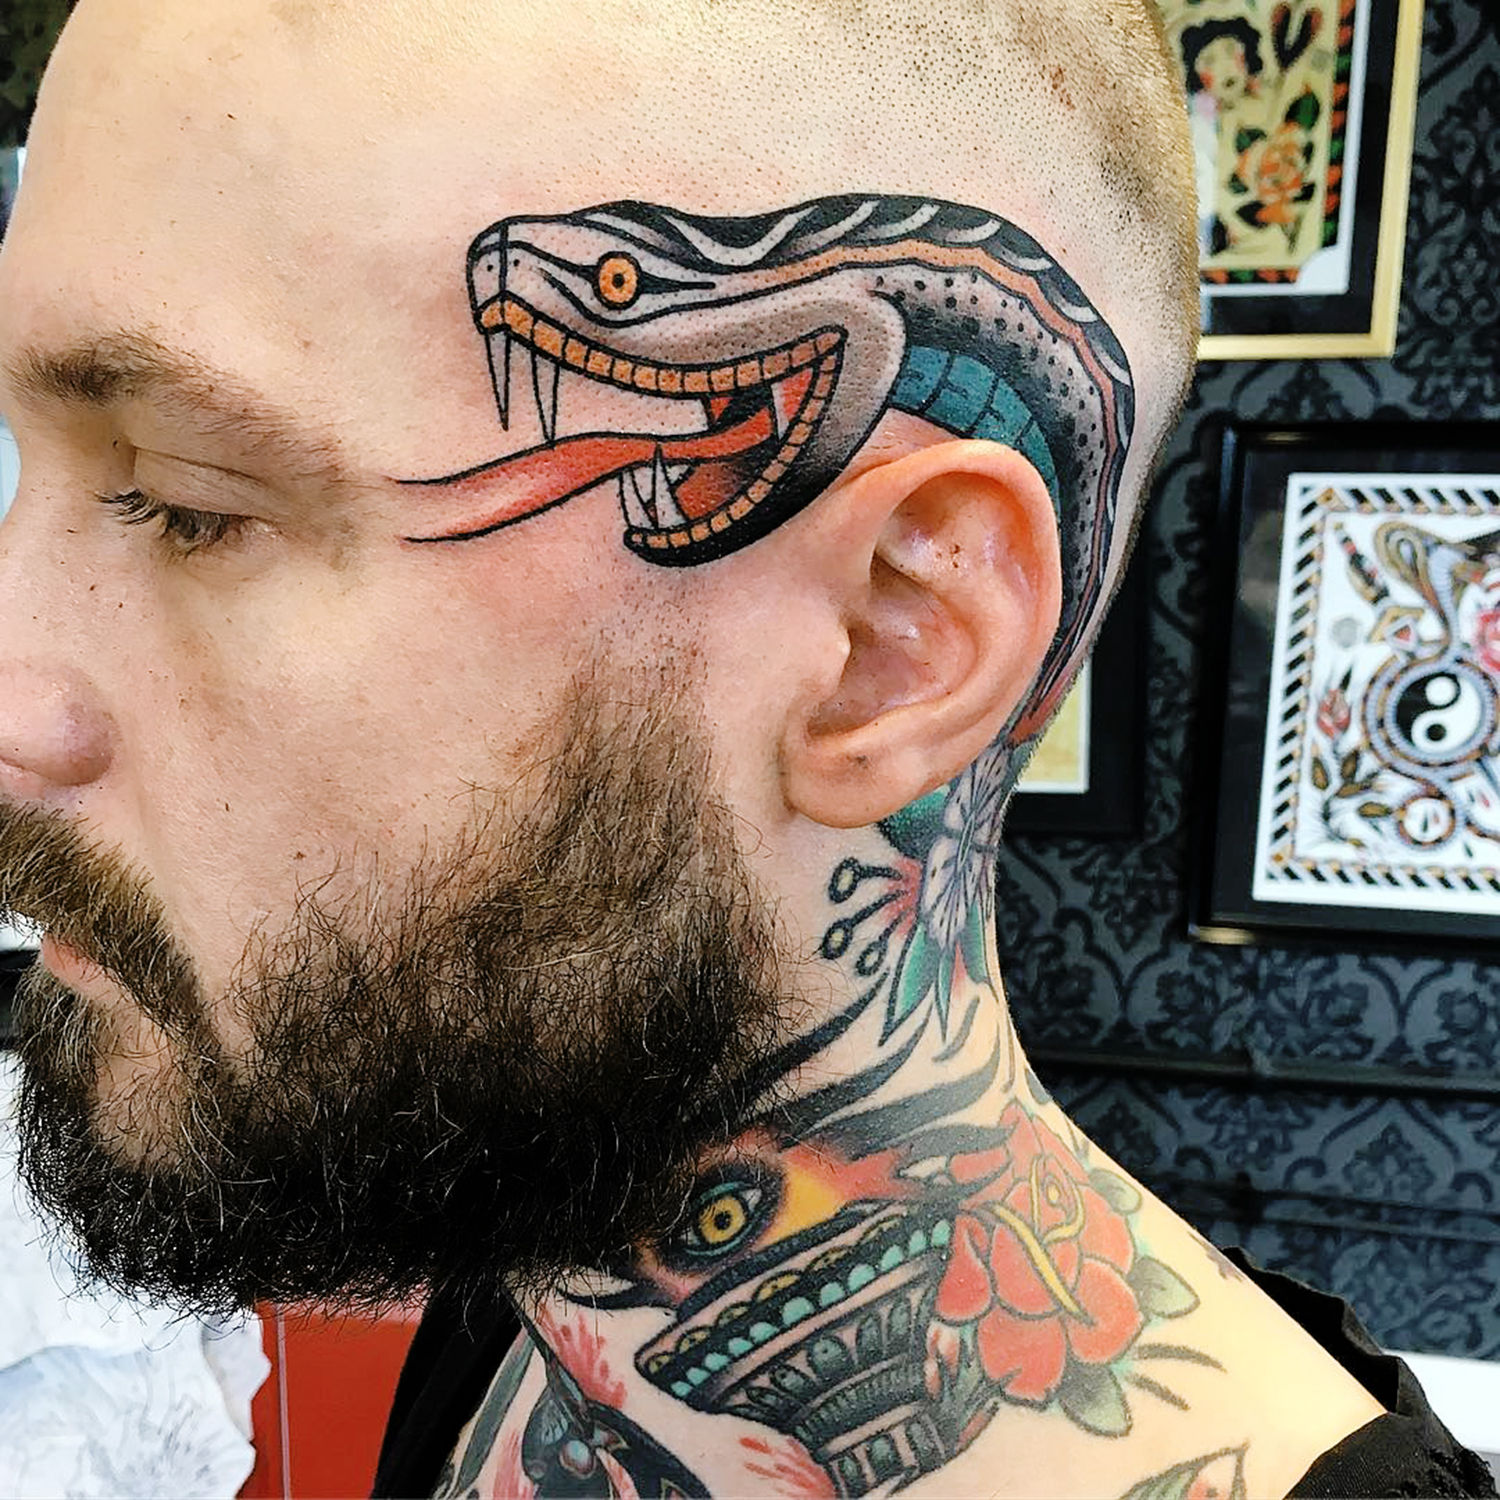 Snake tattoo on side of head, neotraditional